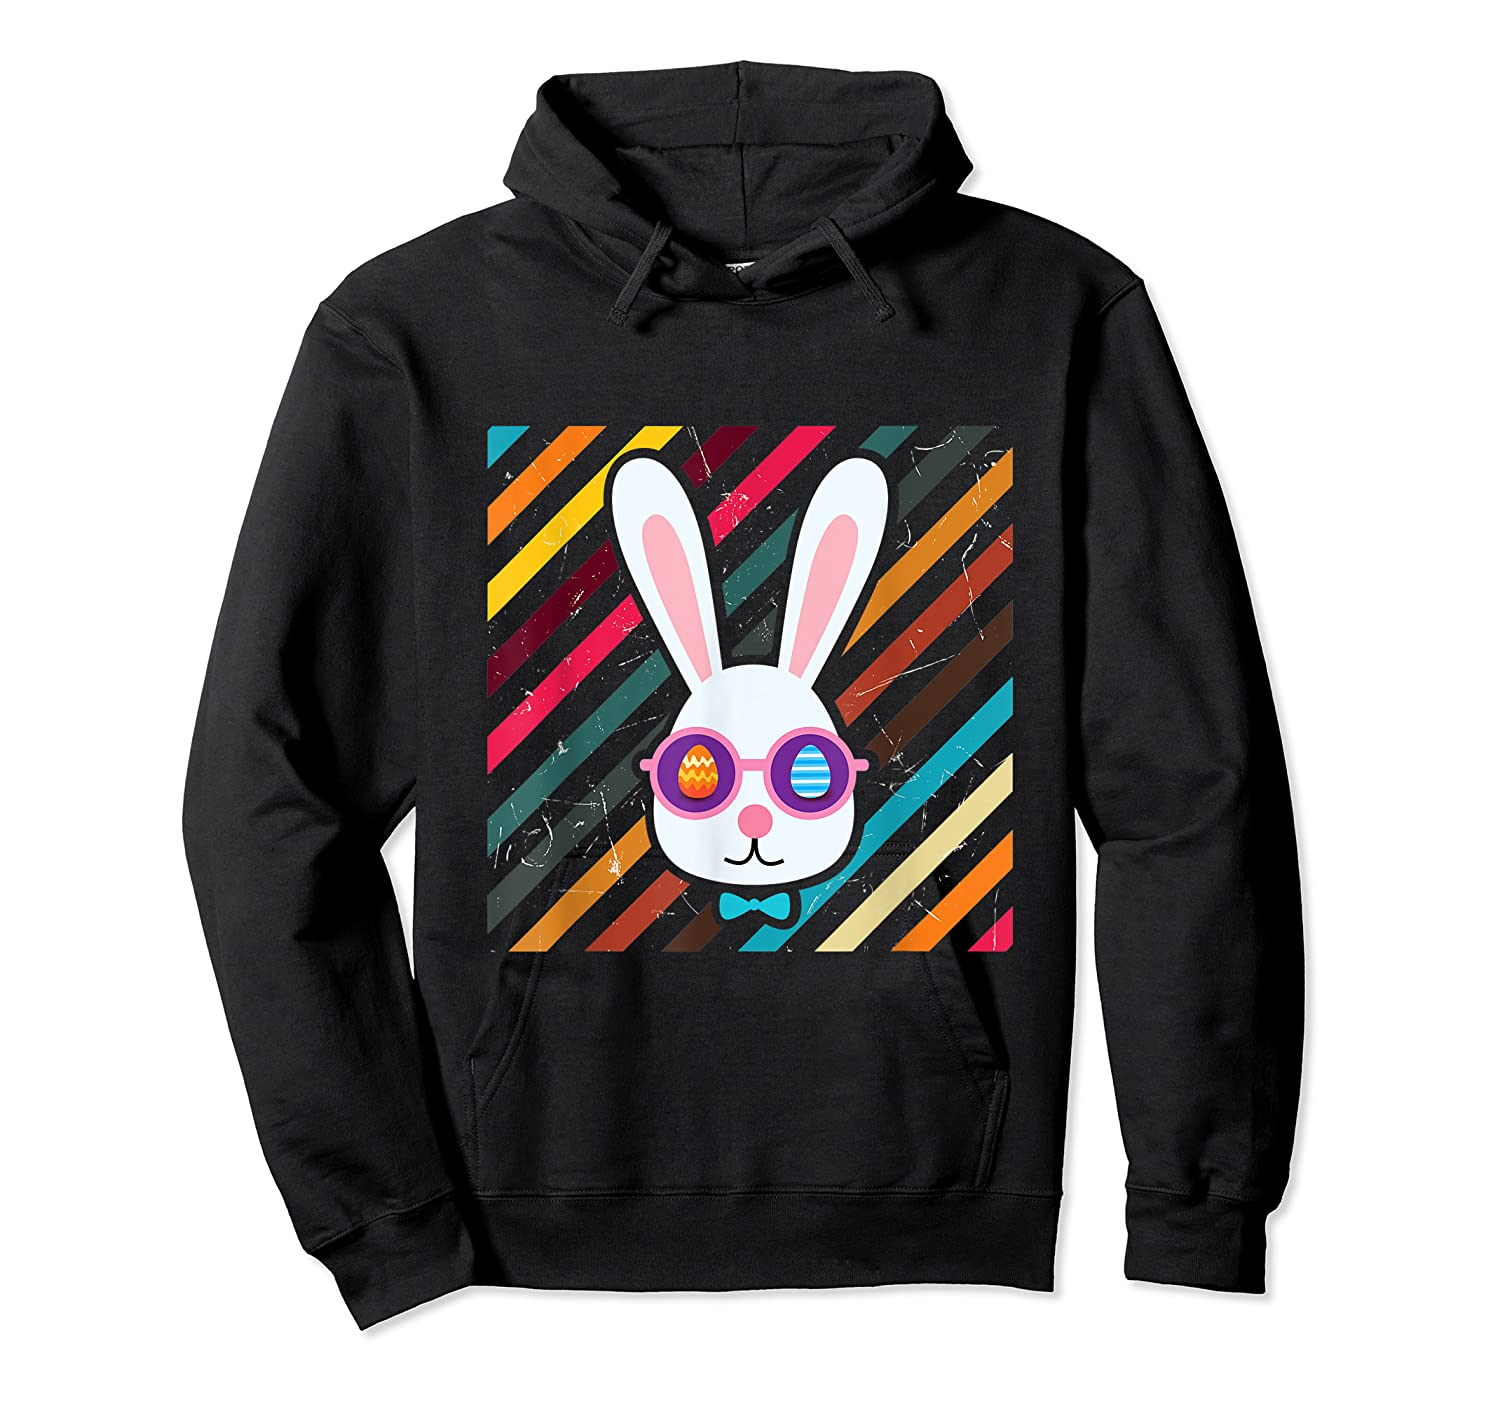 Funny Techno Rabbit Easter Edition Shirt Easter Celebration Unisex Pullover Hoodie